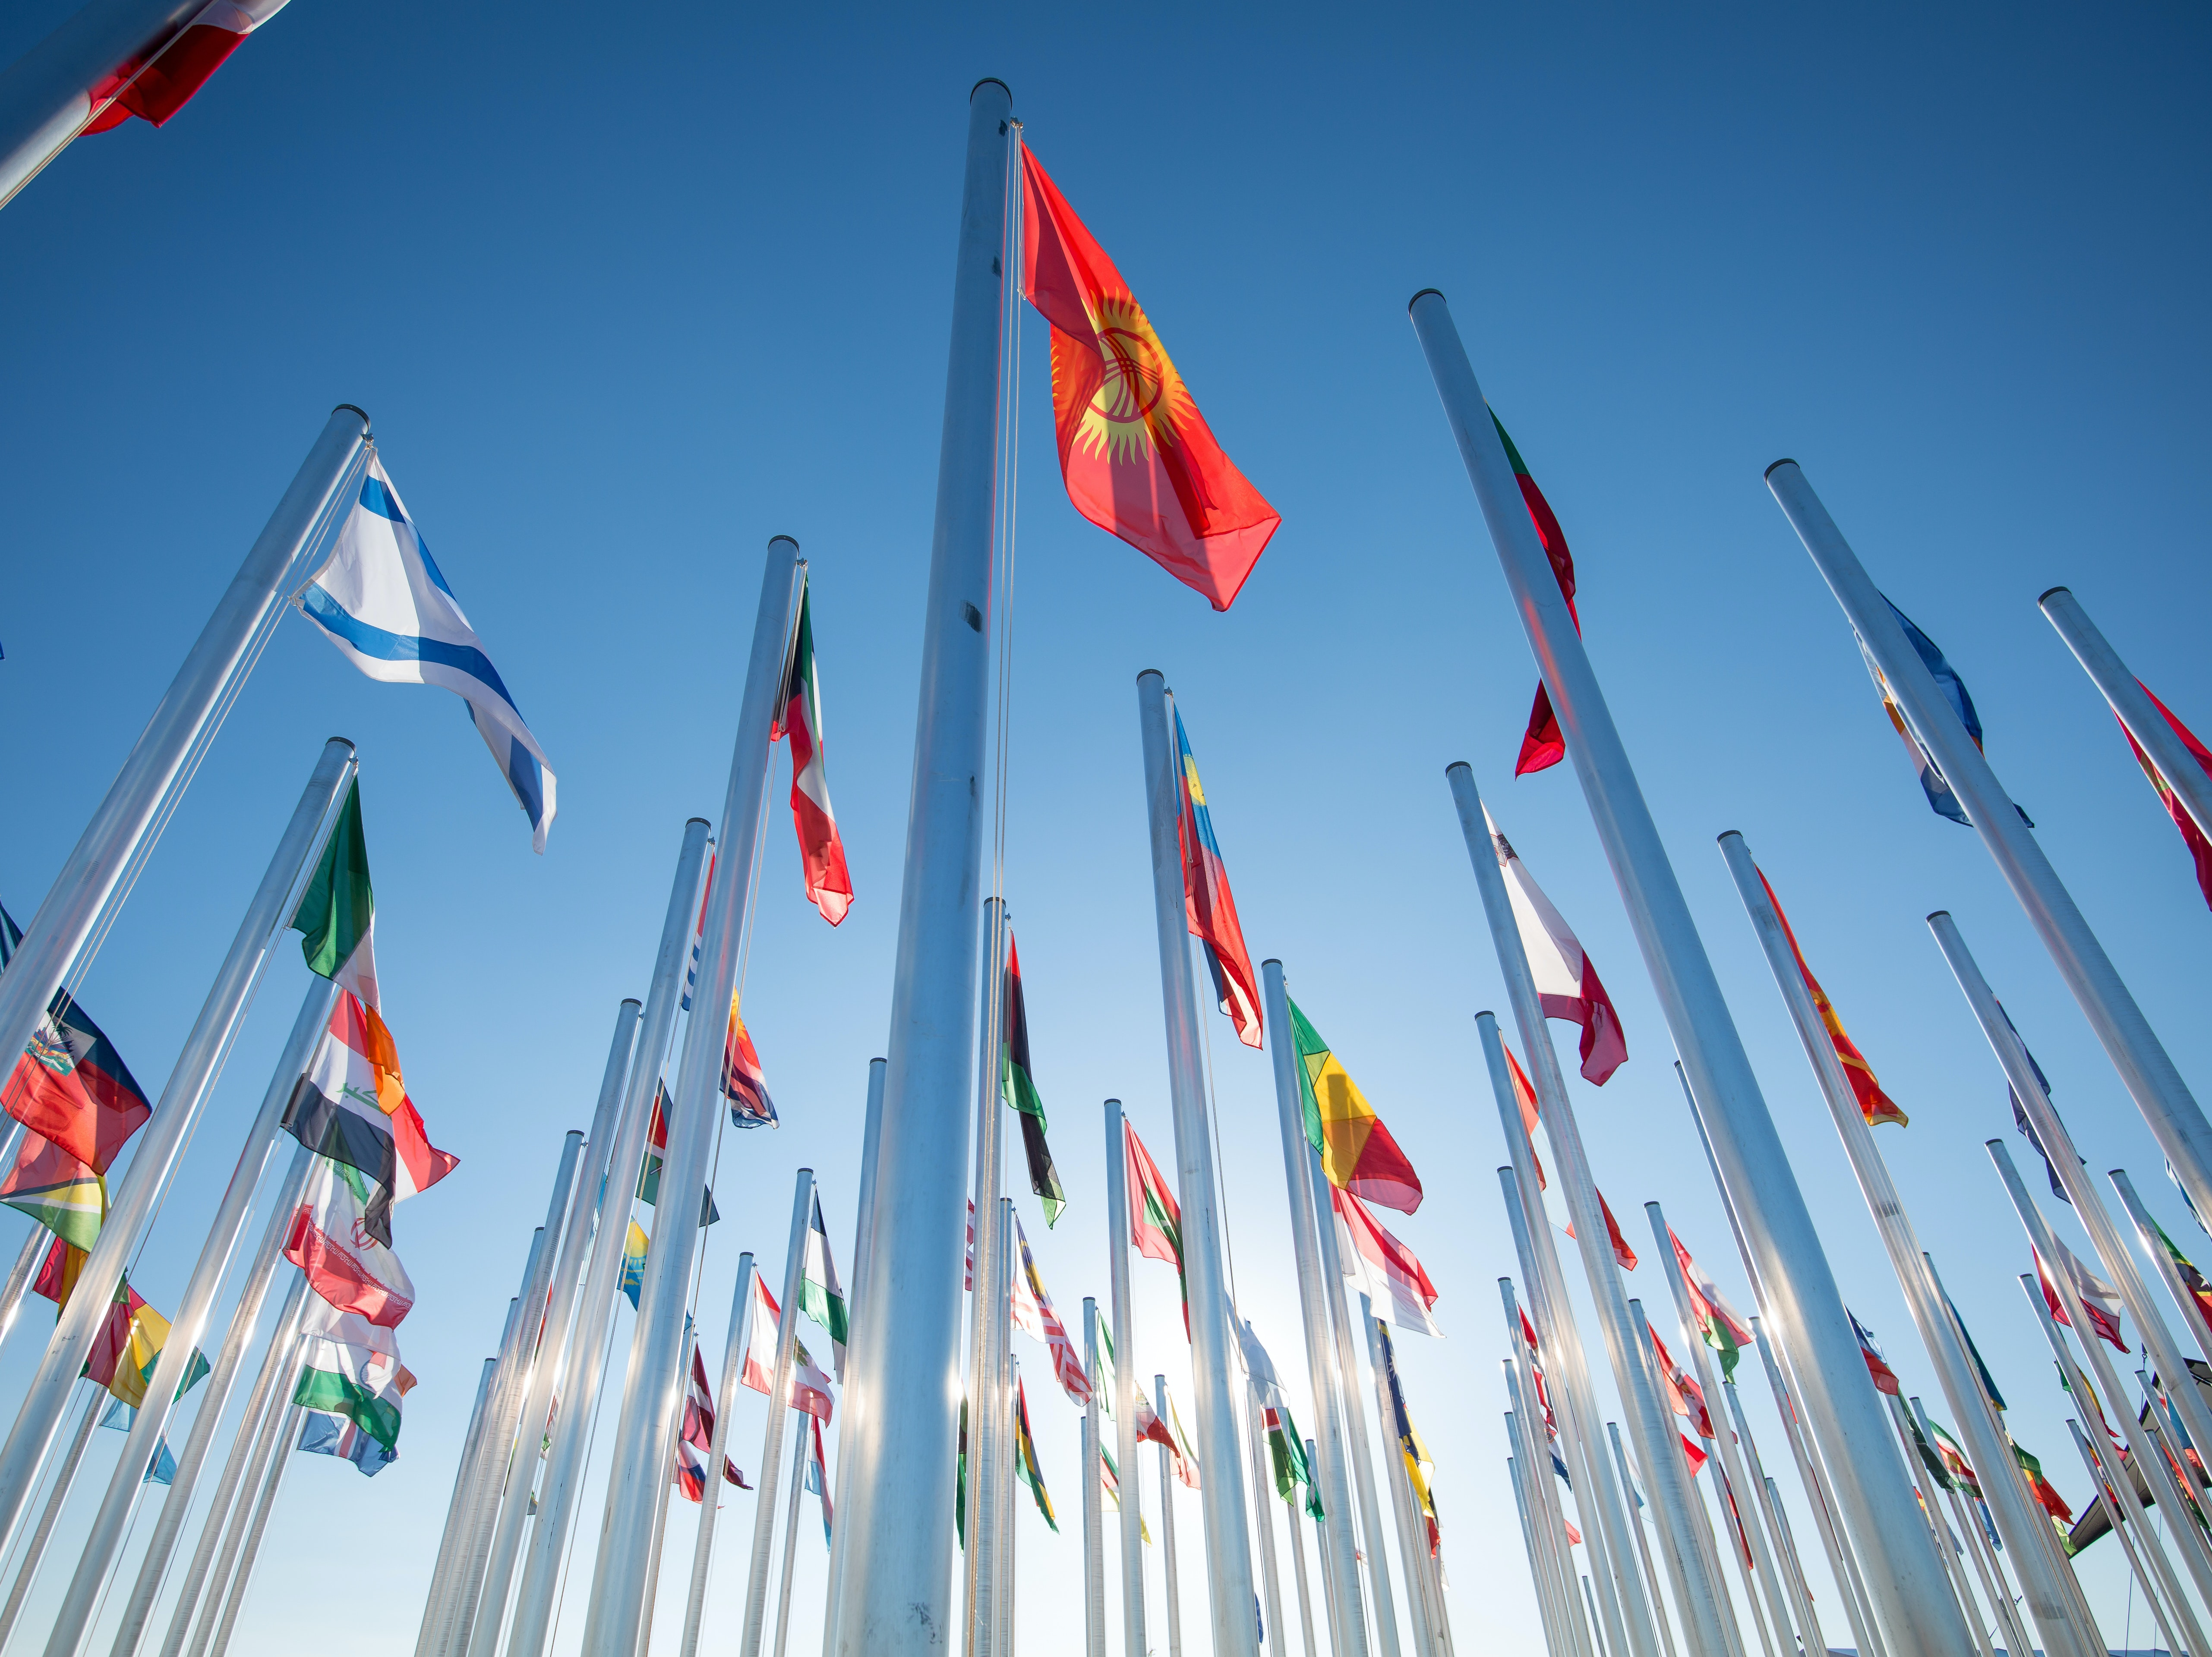 Country Flags outside the conference venue